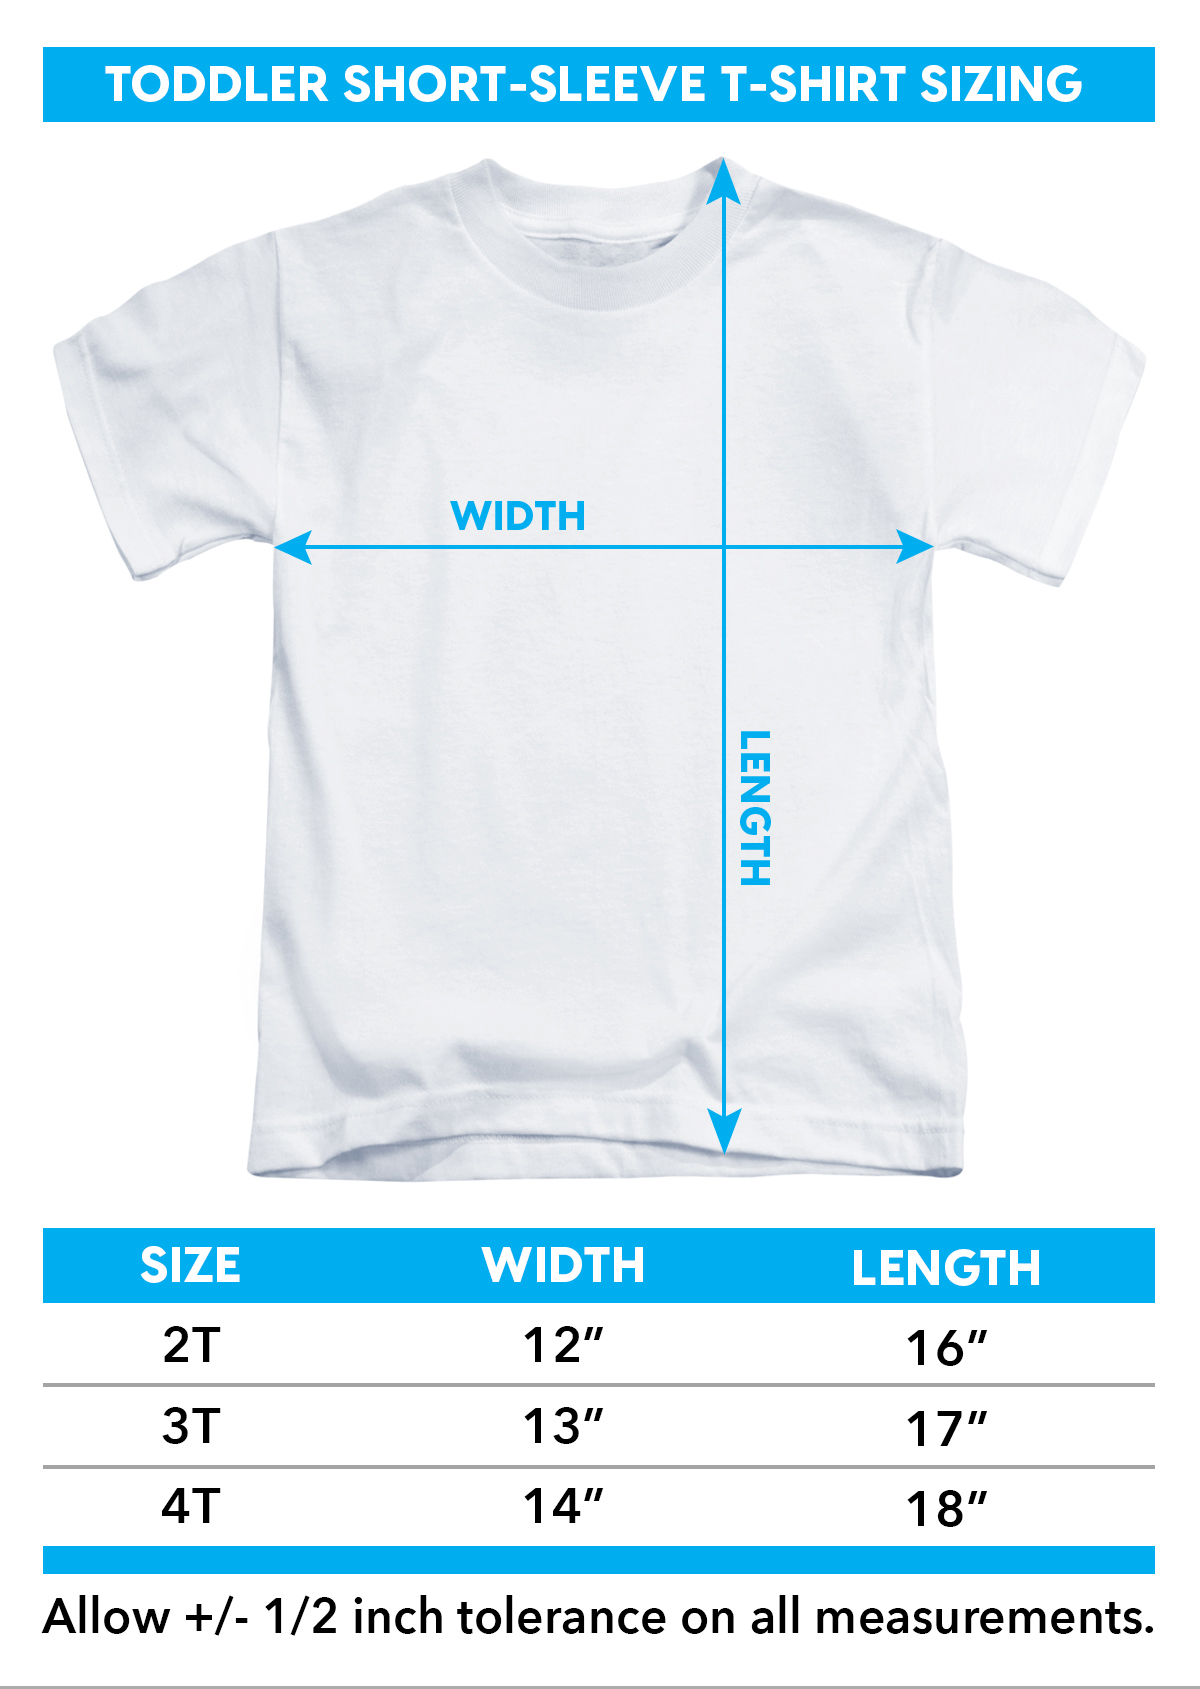 Sizing Chart for Hagar The Horrible Toddler T-Shirt - Take Me Home